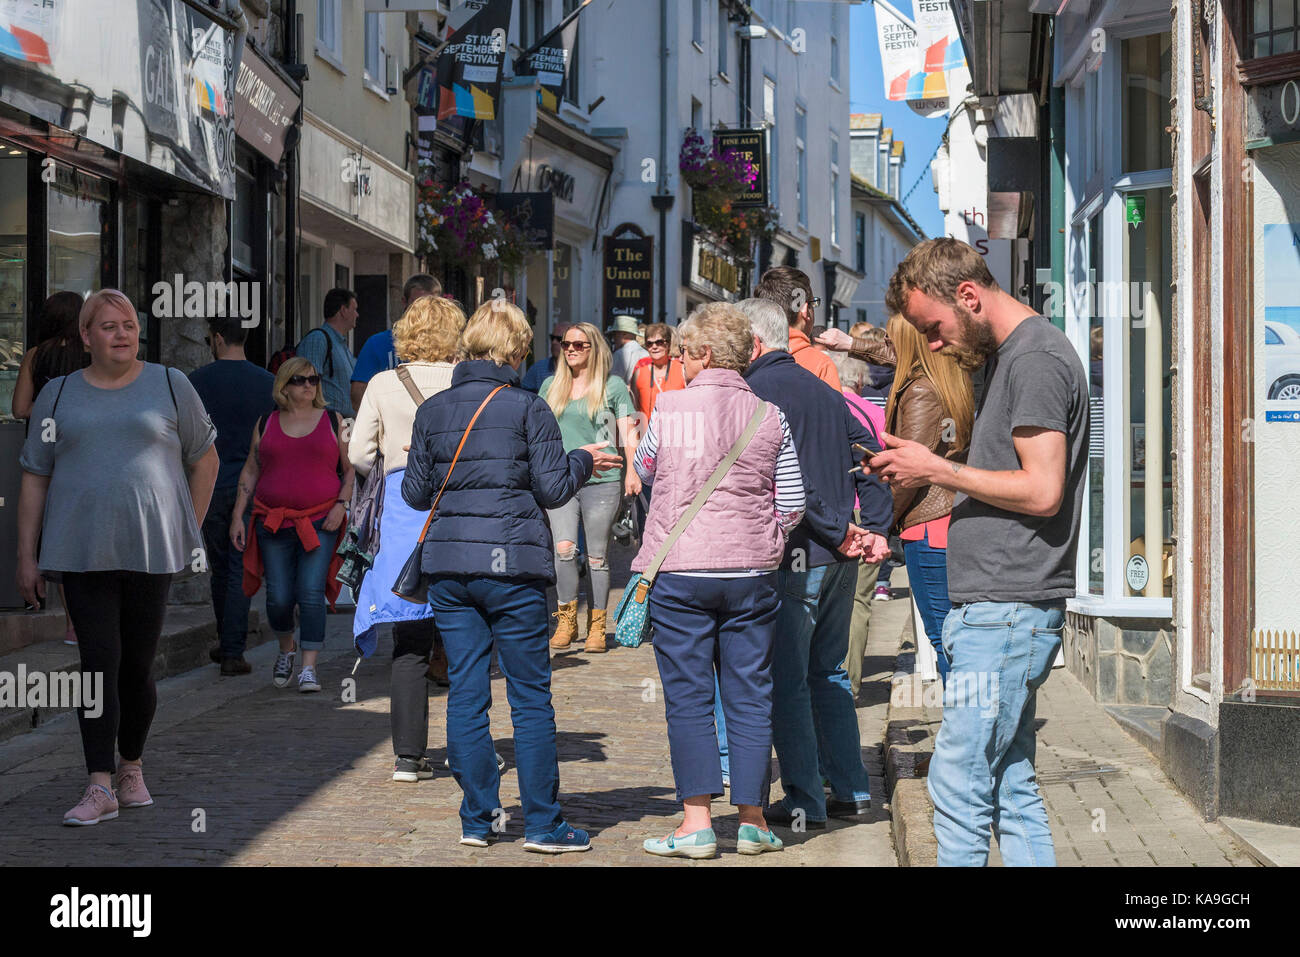 St Ives - a busy street scene in the picturesque St Ives town centre in Cornwall. - Stock Image